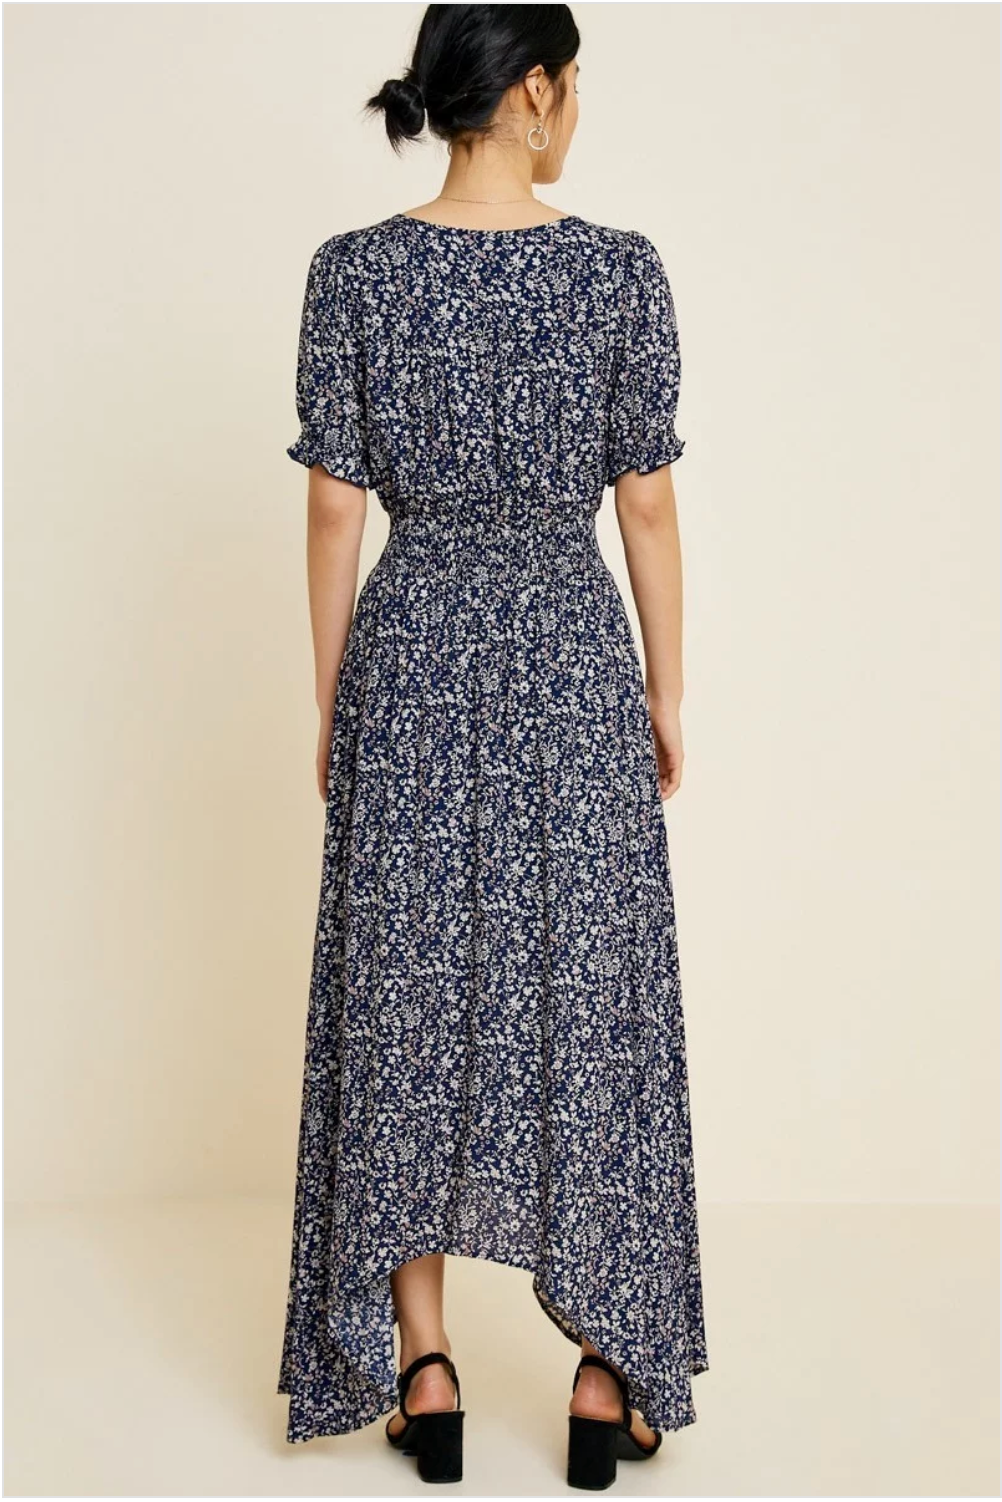 Floral Ruched Waist Maxi Dress - Sswing Lifestyle Company